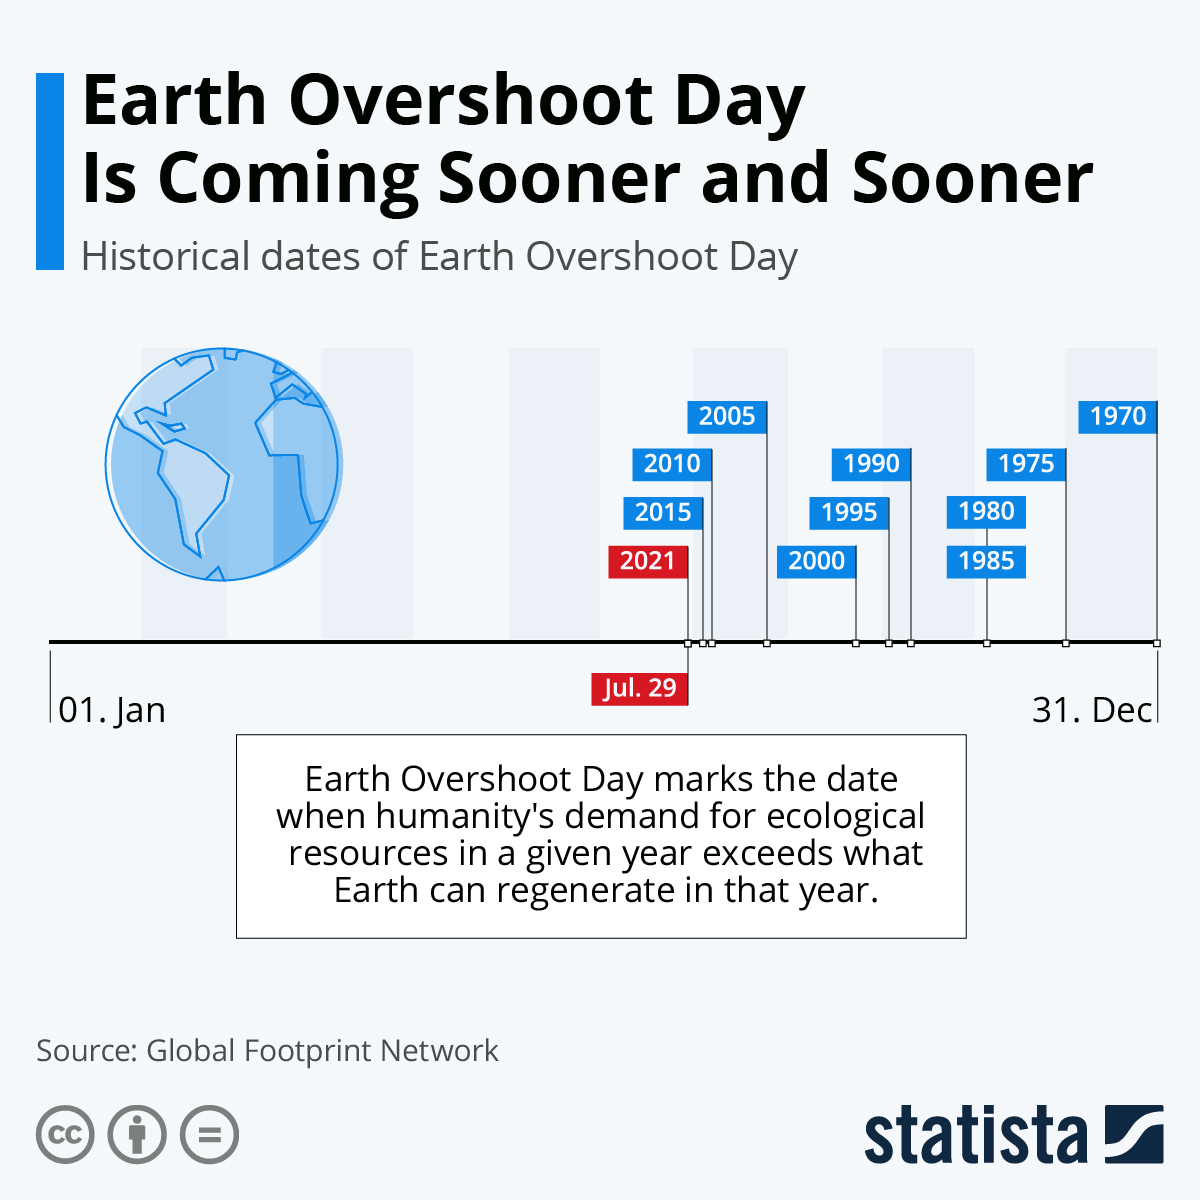 Earth Overshoot Day Is Coming Sooner And Sooner